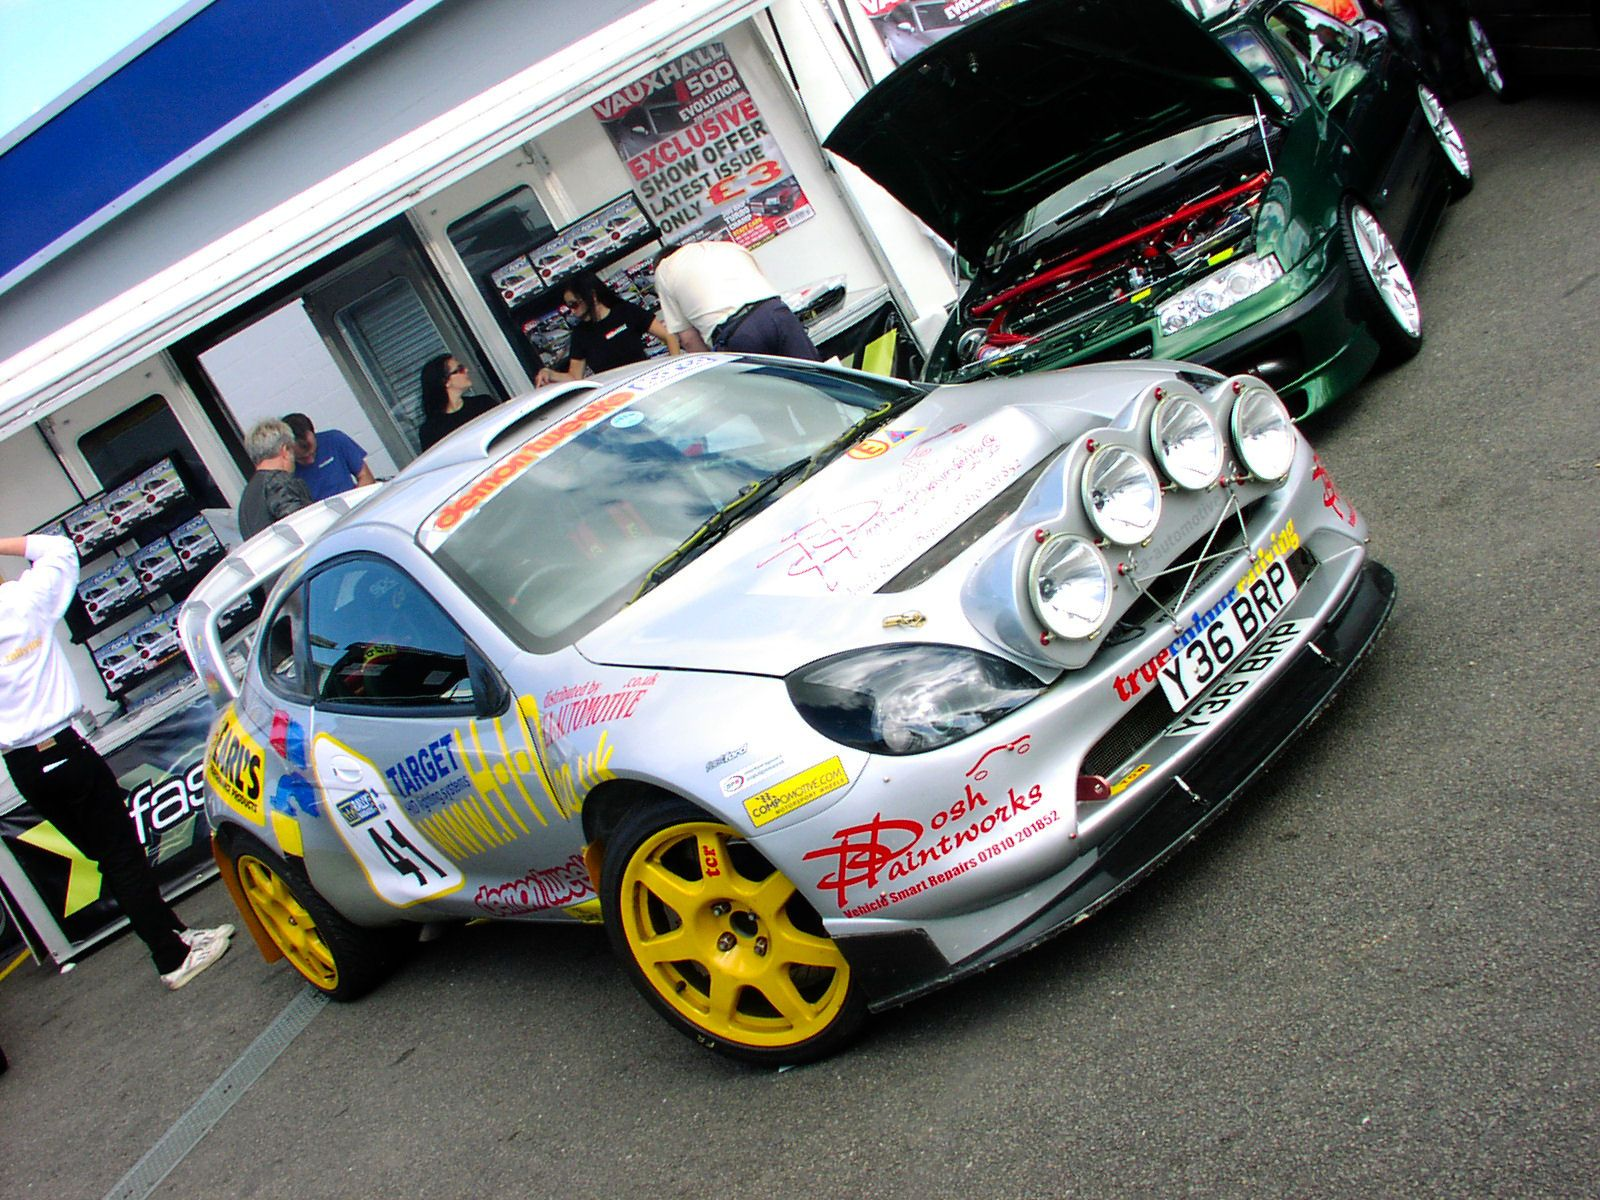 Ford Puma Kit Car Camion Rallye